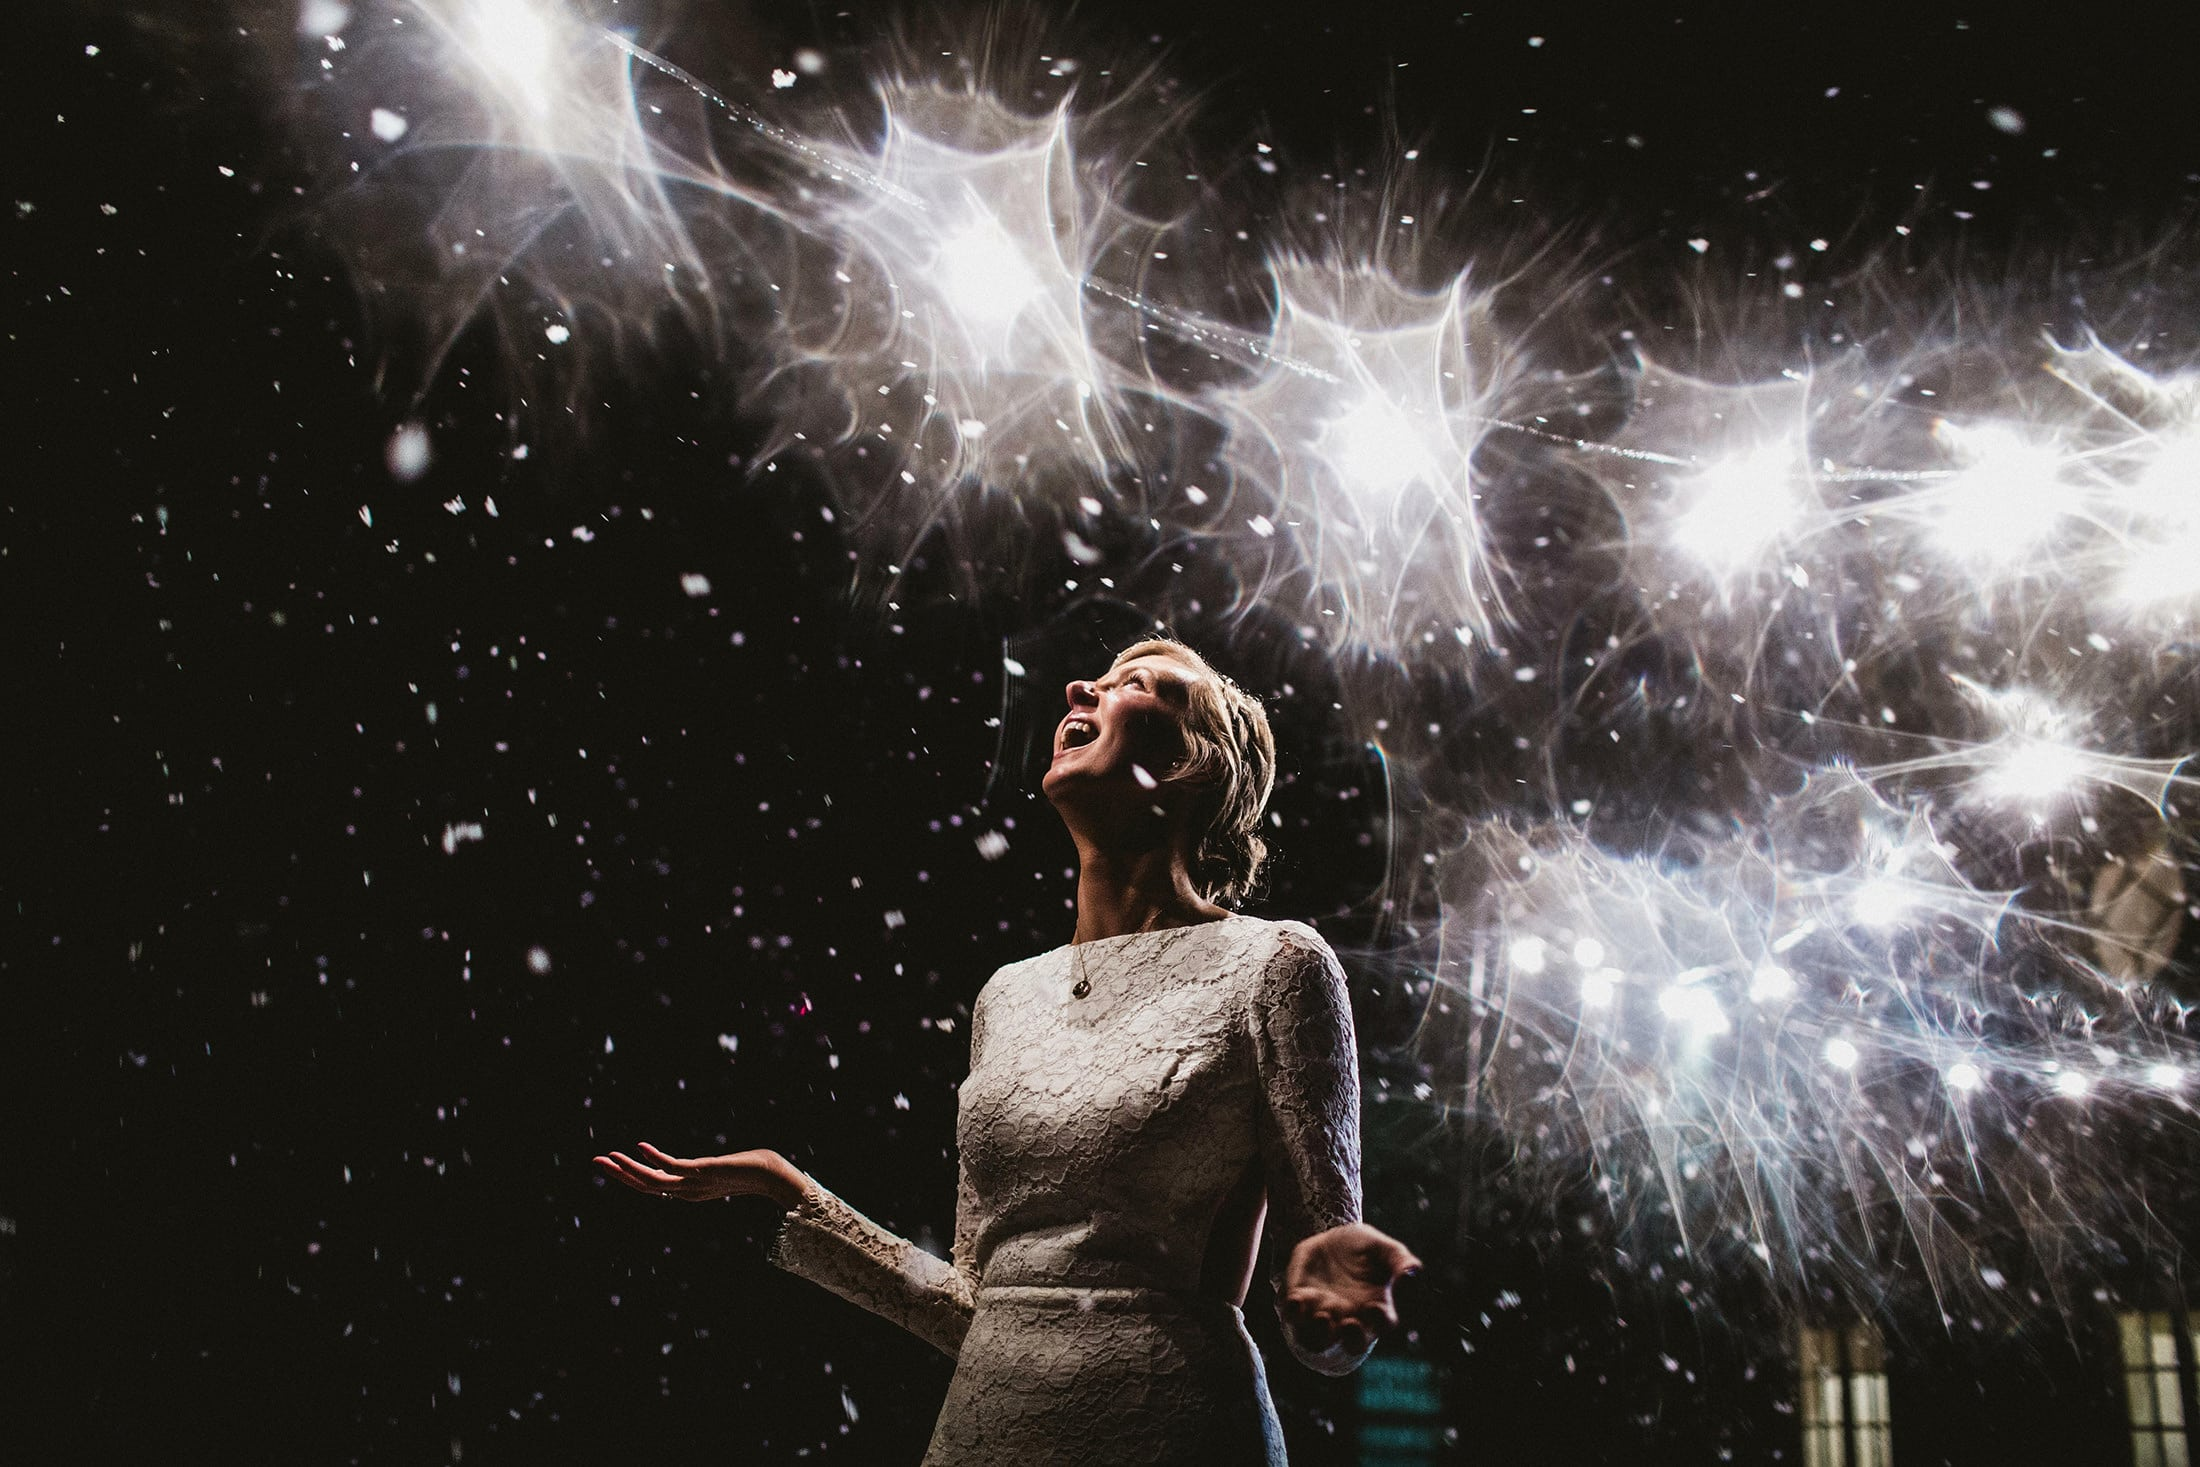 bride looking up at snowflakes falling all around her